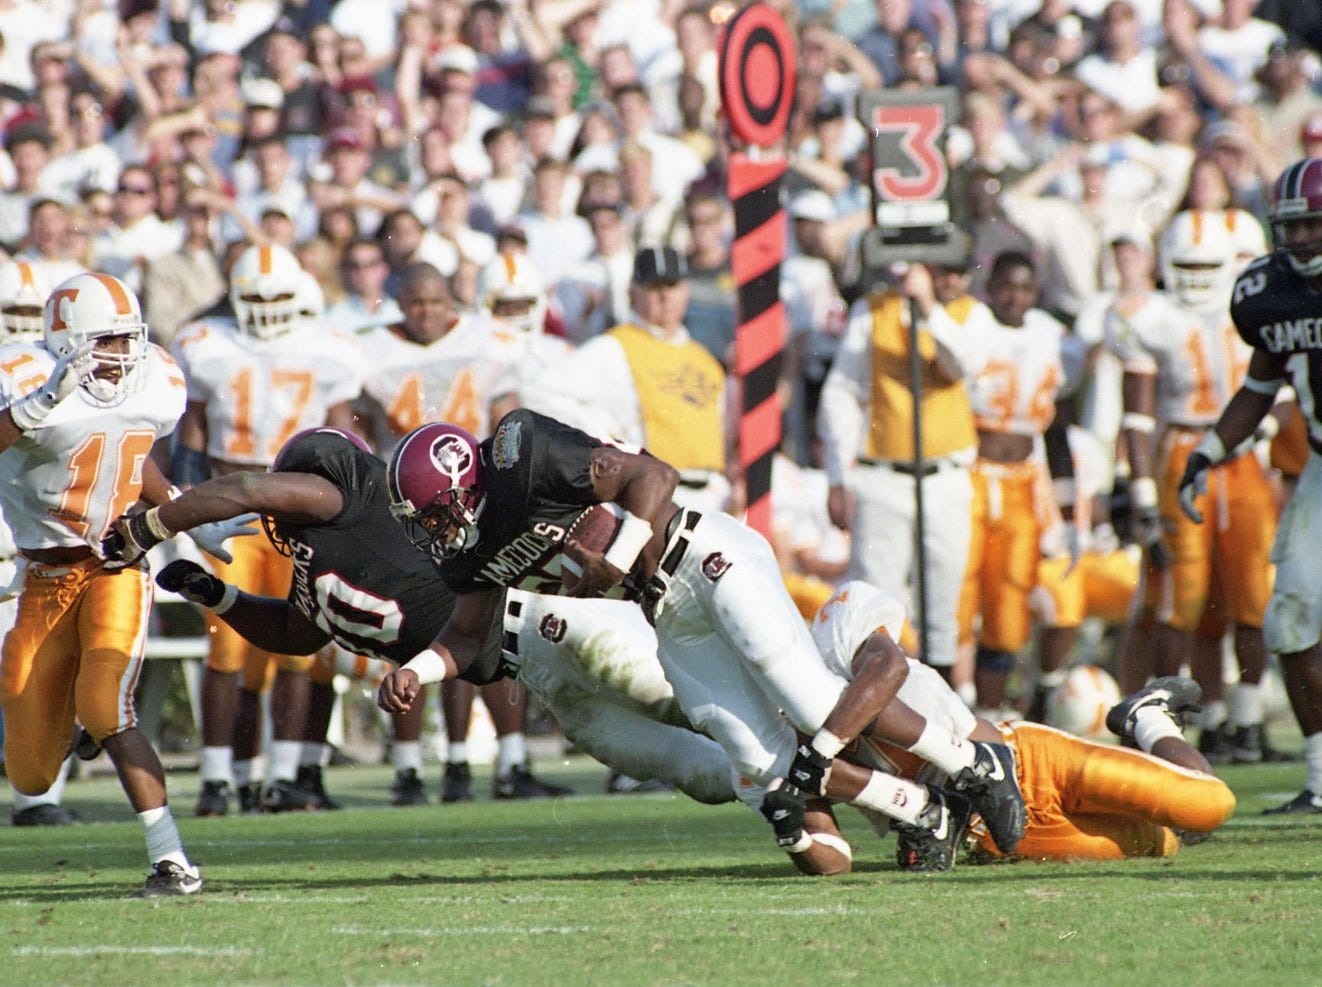 Vol's defensive end DeRon Jenkins (18) closes in on South Carolina running back Rob DeBoer in a 1992 game at South Carolina.